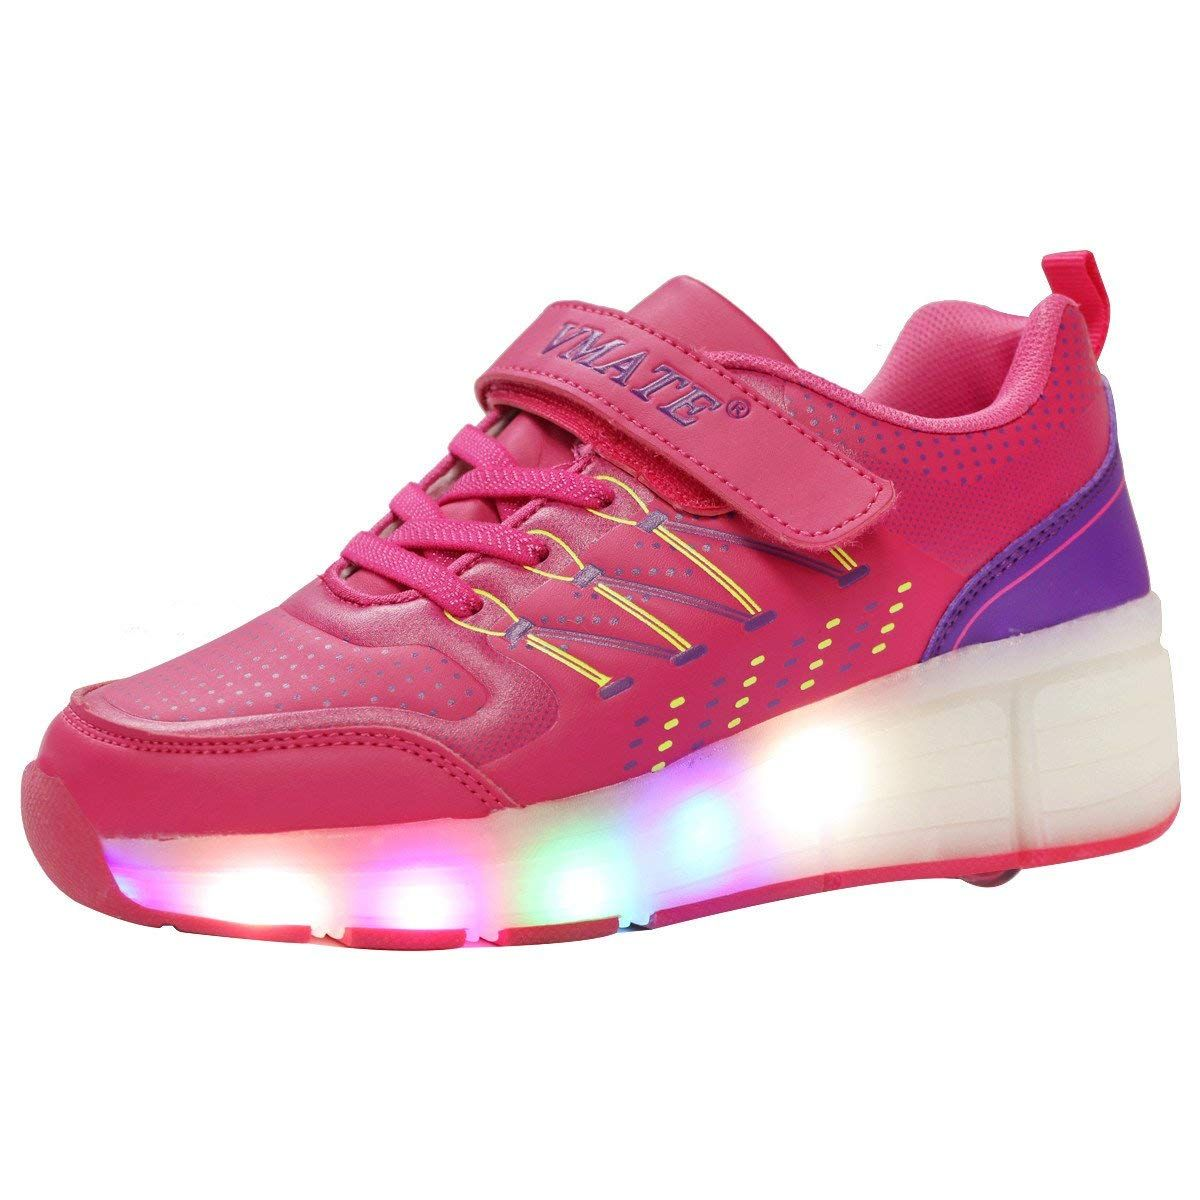 12+ Roller shoes for kids ideas information